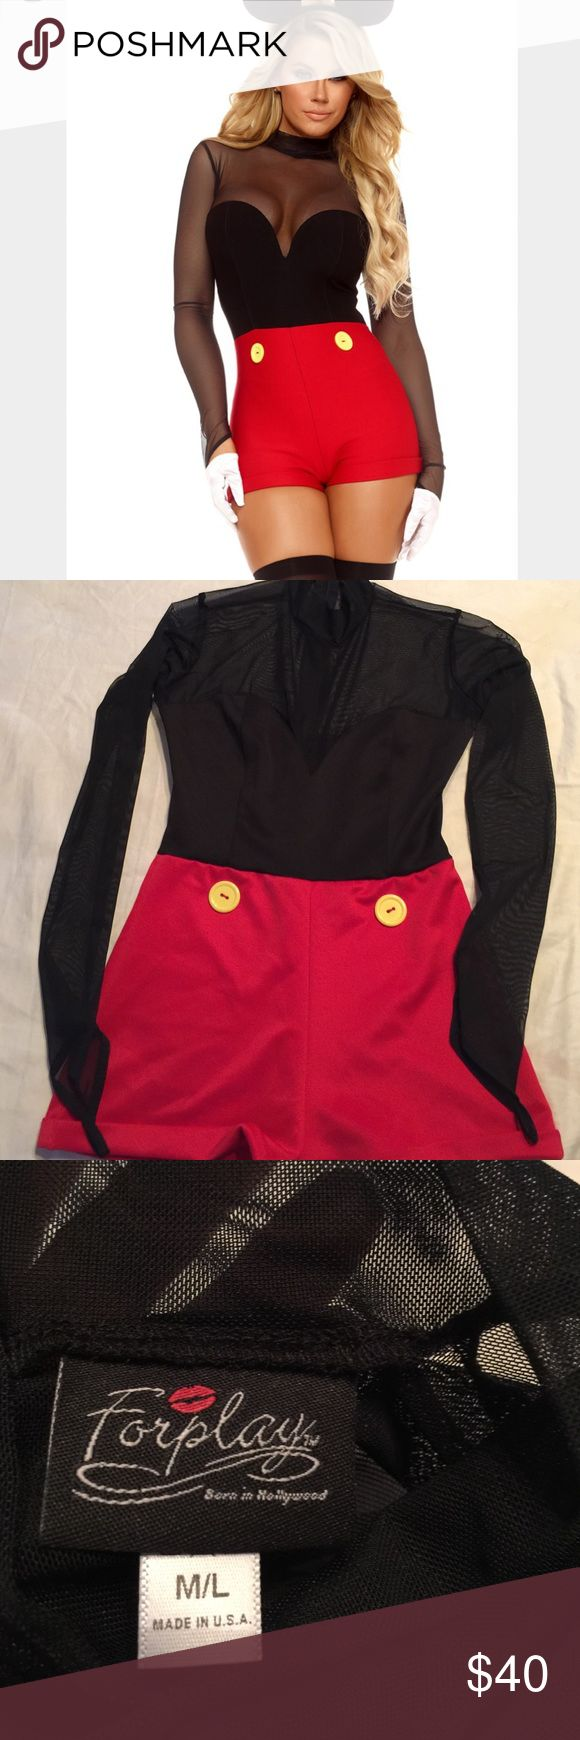 Mickey Mouse costume Brand new never worn. Perfect for Halloween. Pair with cute Mickey ears. And some white gloves. Extra cute and sexy Forplay  Other